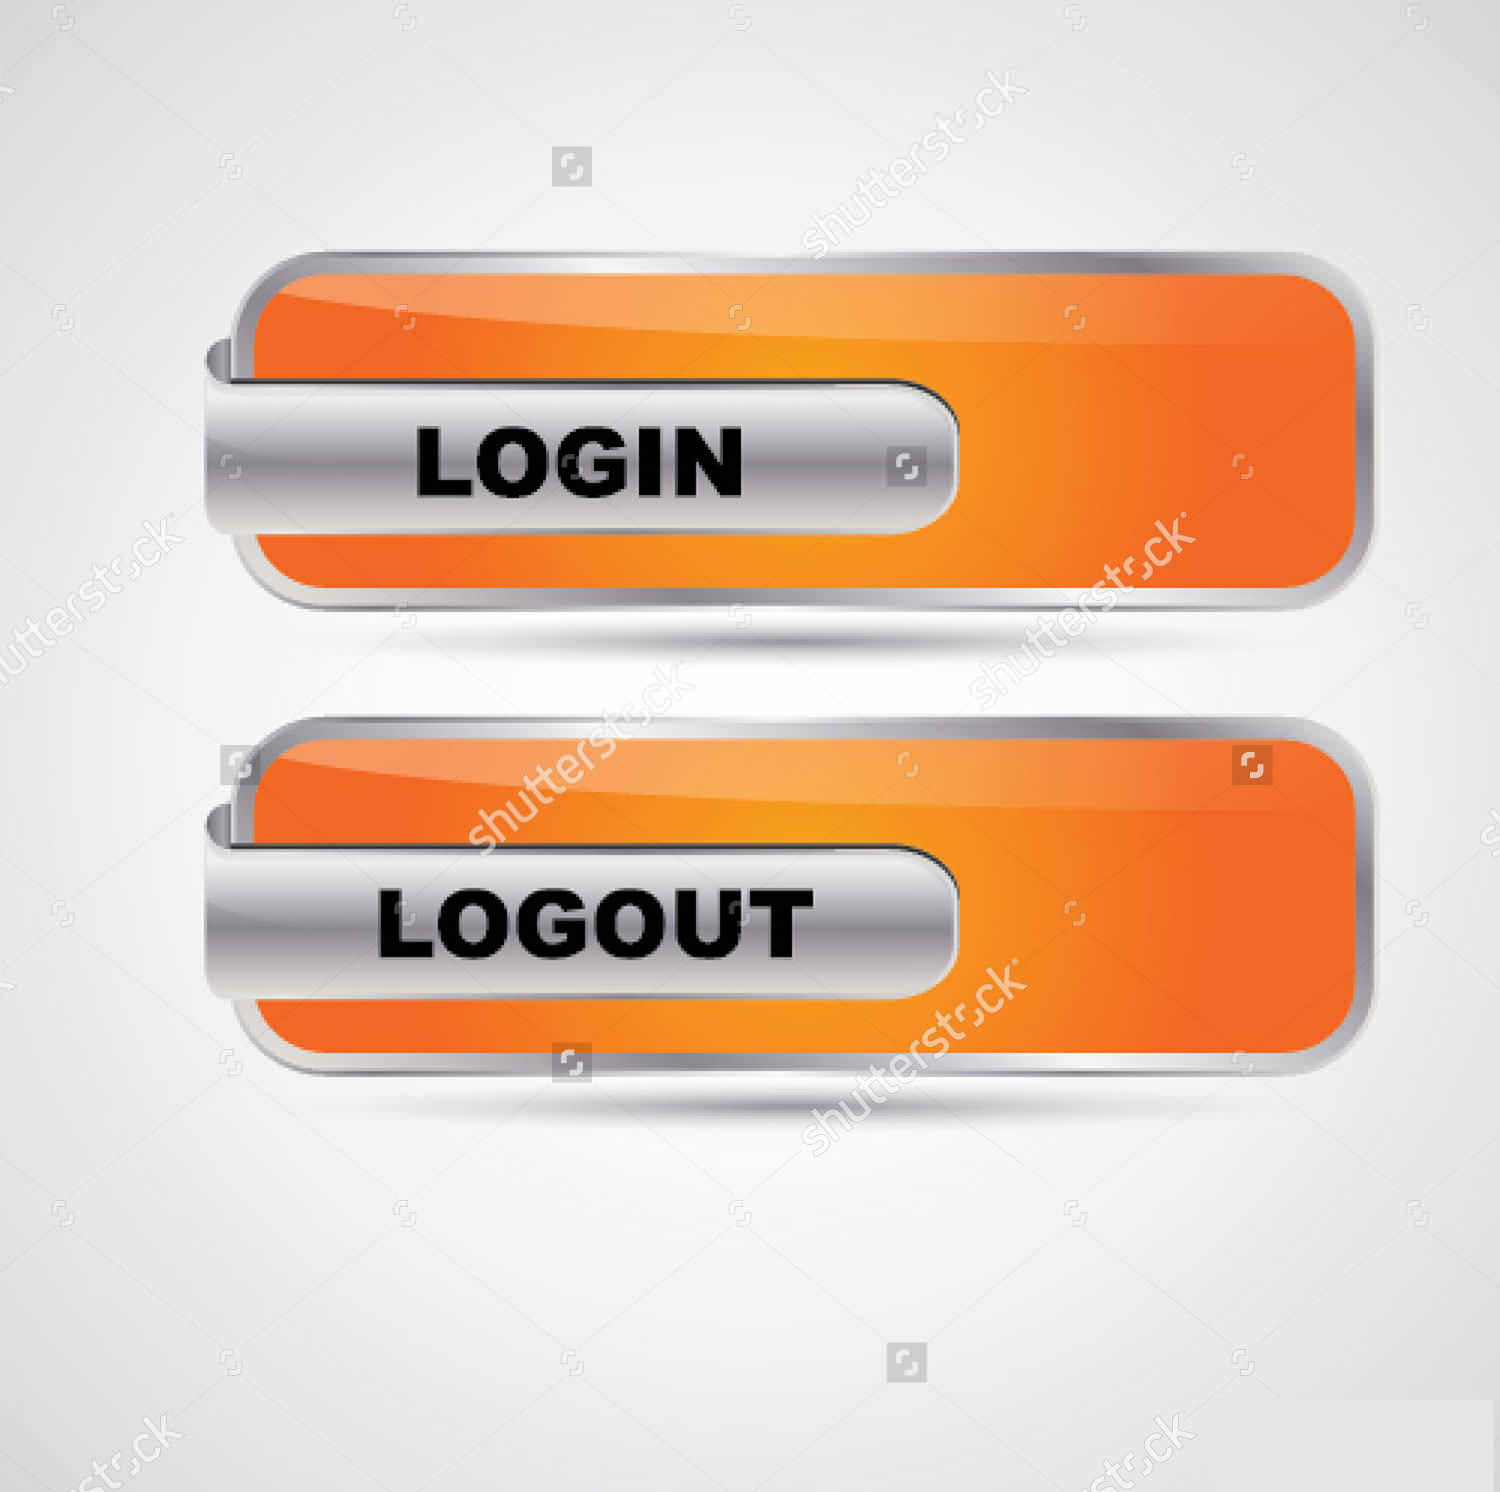 login and logout buttons21